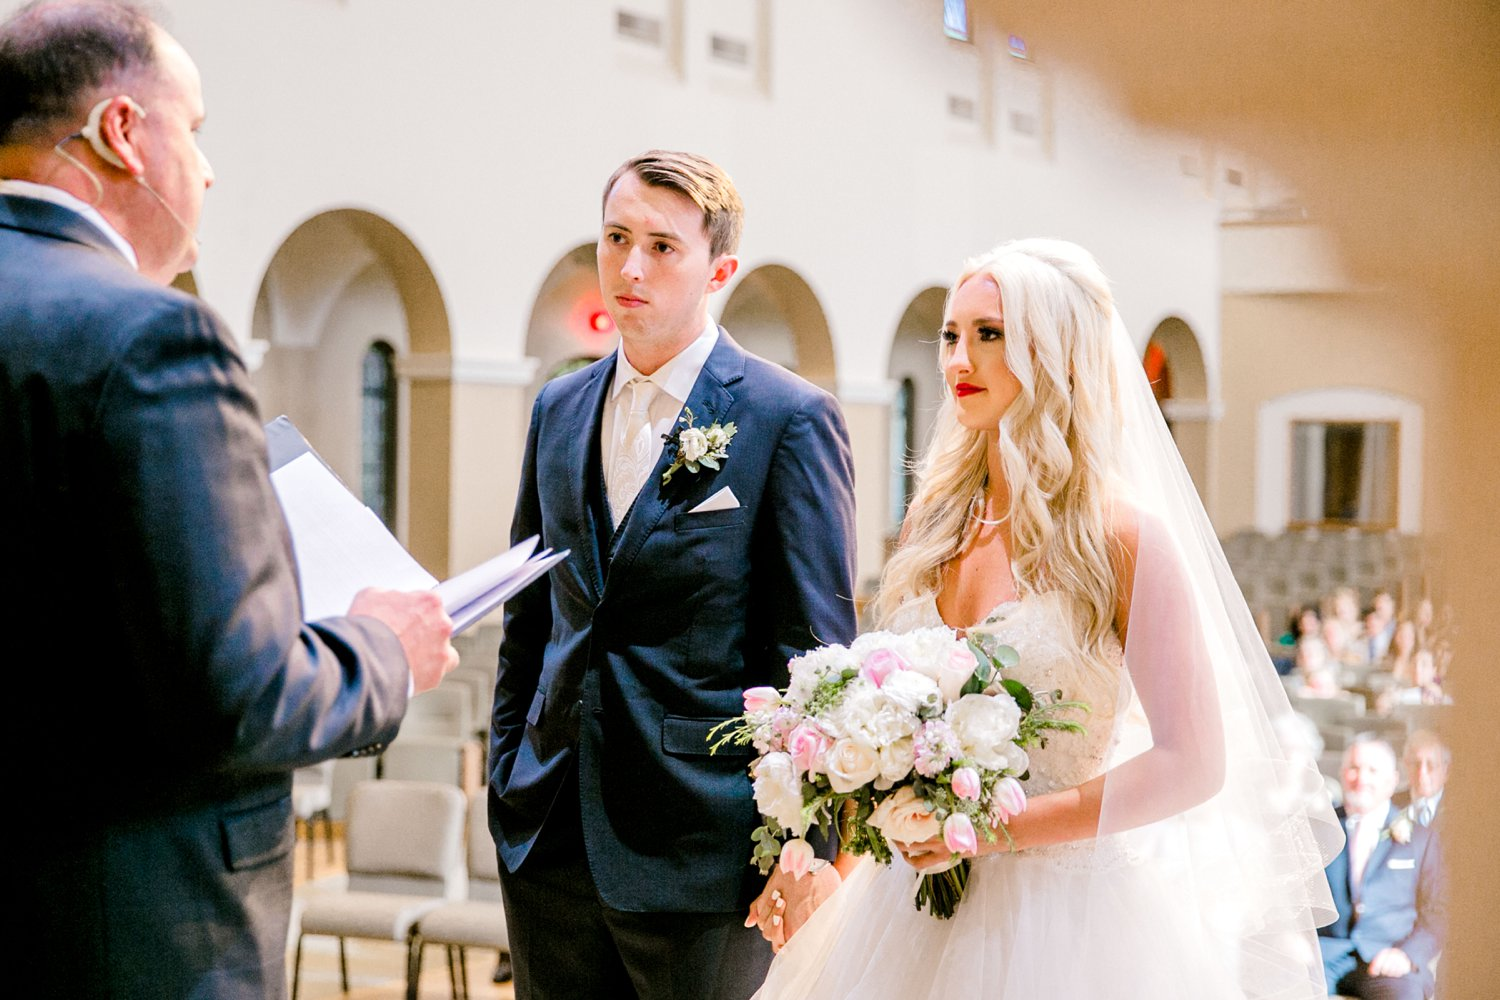 MADI_AND_WILL_STEPHENS_ALLEEJ_LUBBOCK_PHOTOGRAPHER_TEXAS+TECH+FRAZIER_ALUMNI0104.jpg